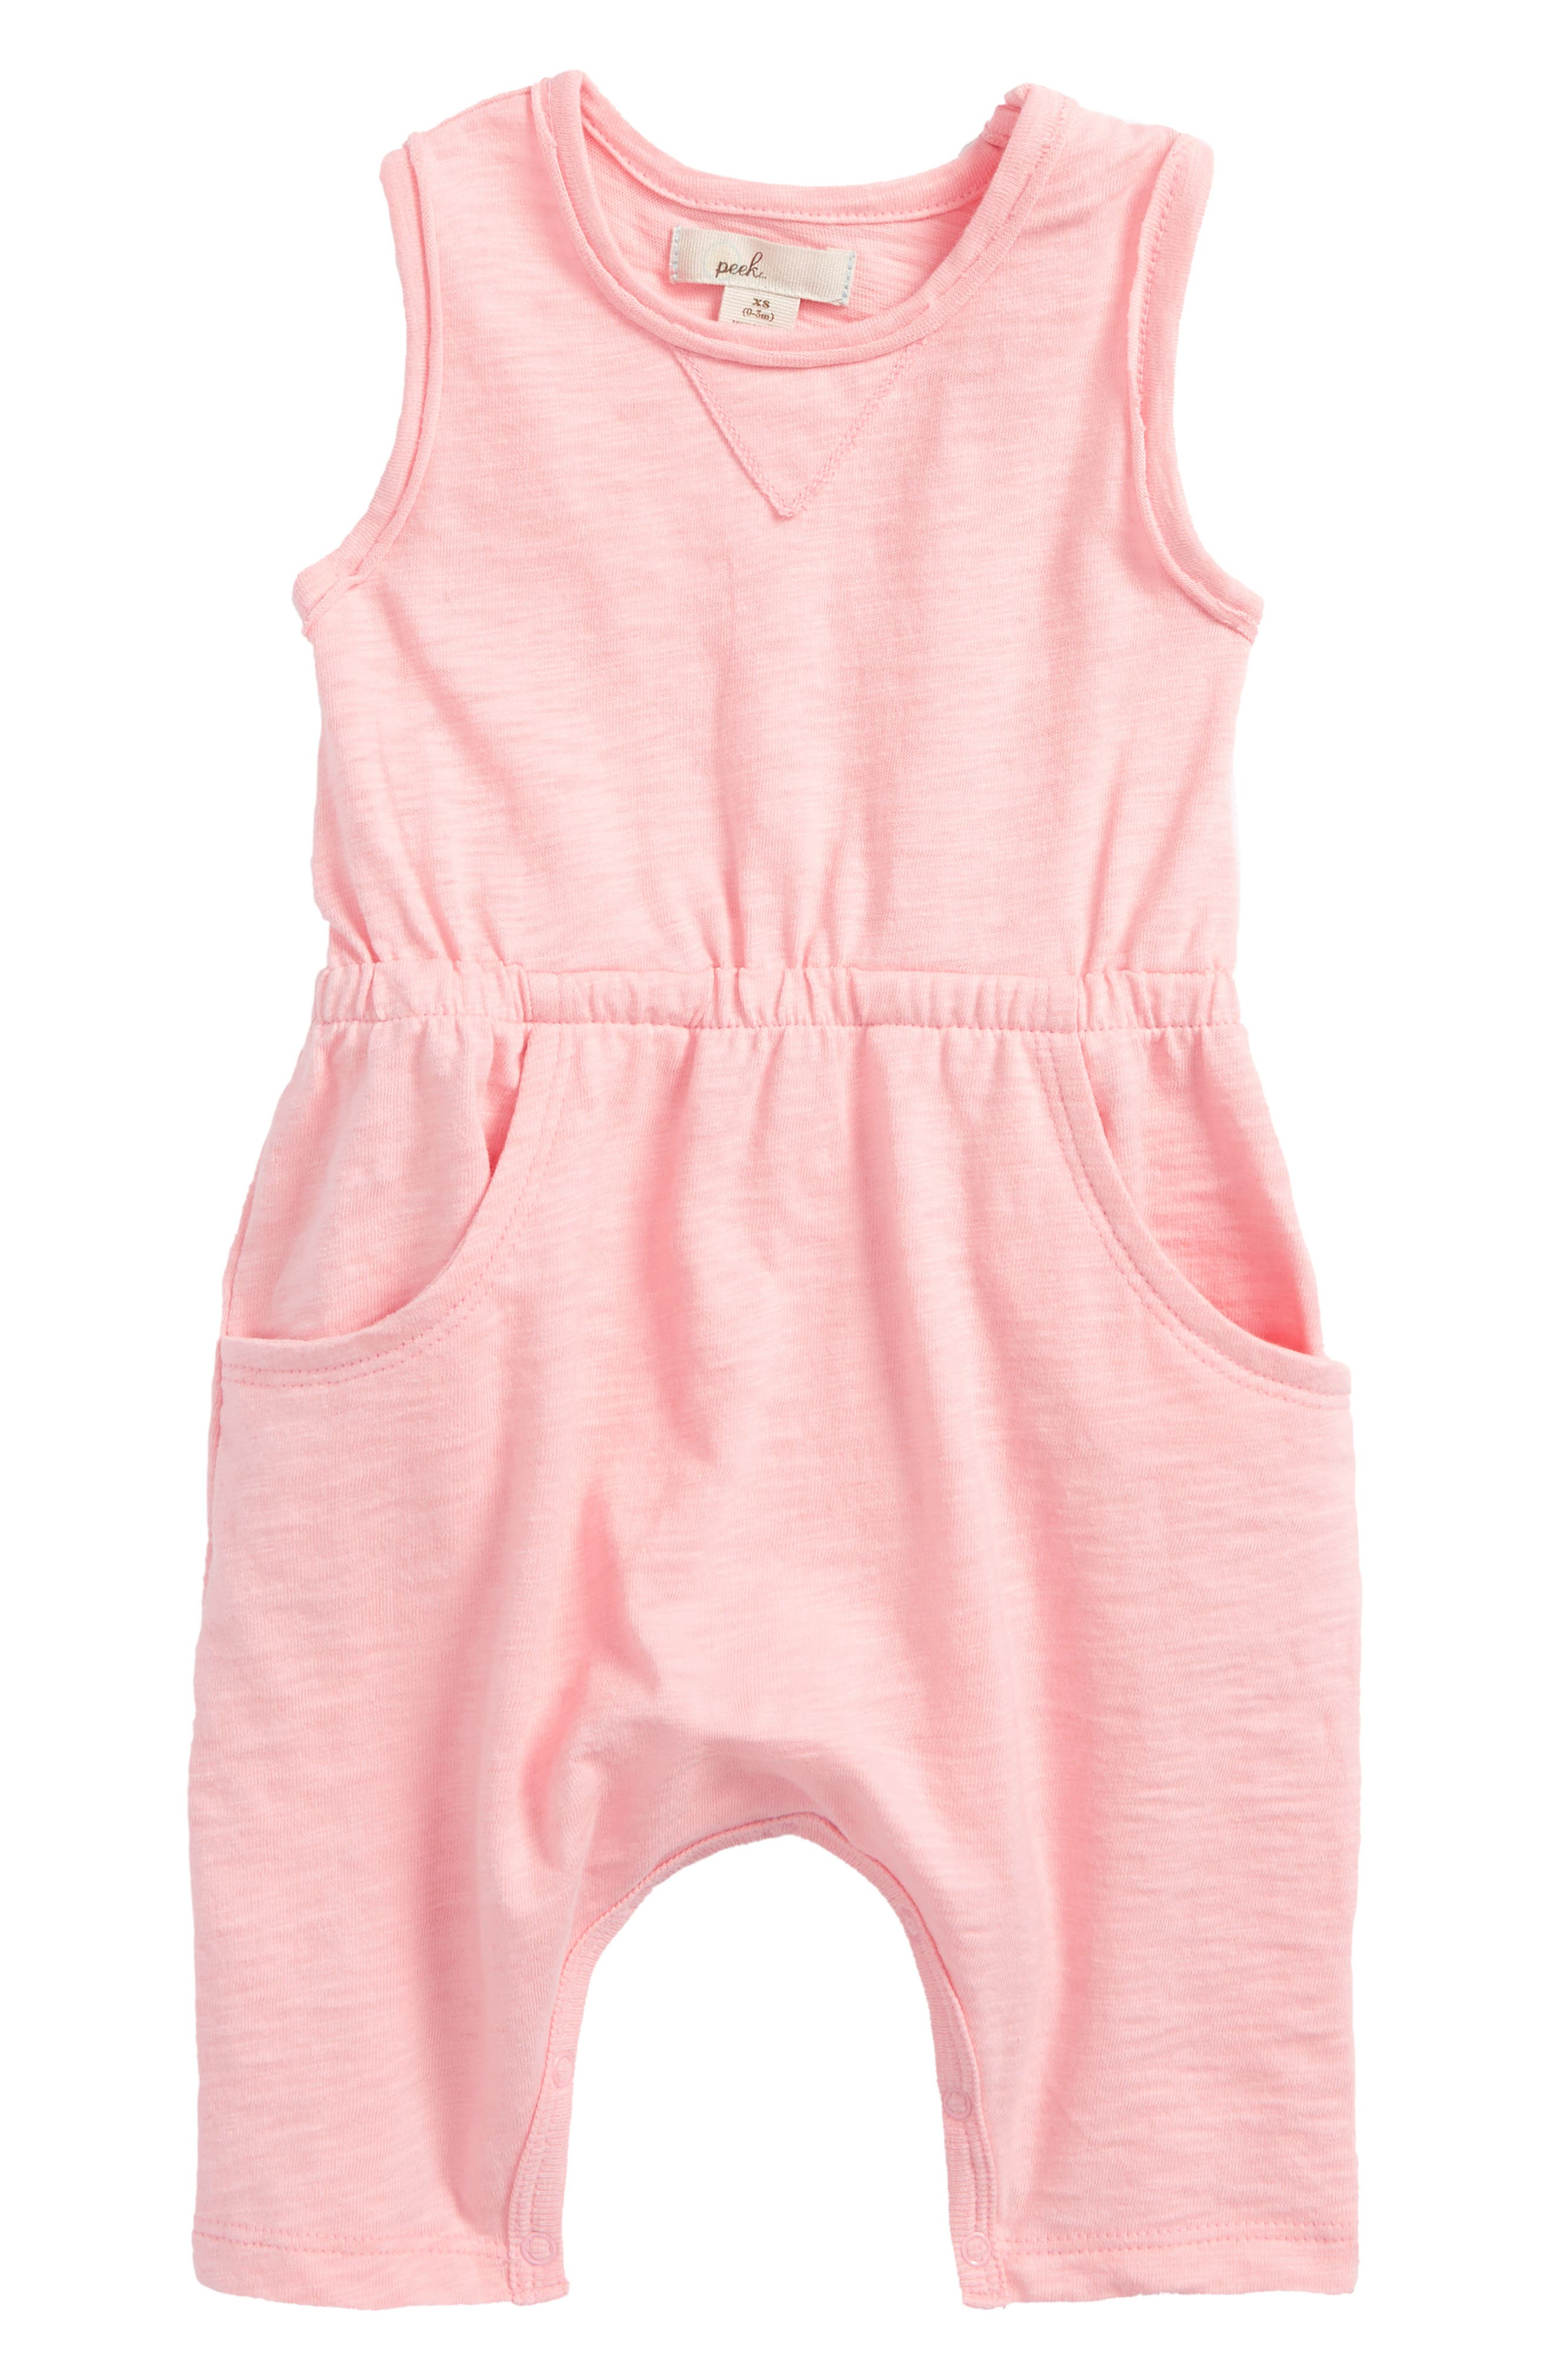 Peek Ava Romper,                             Main thumbnail 1, color,                             950